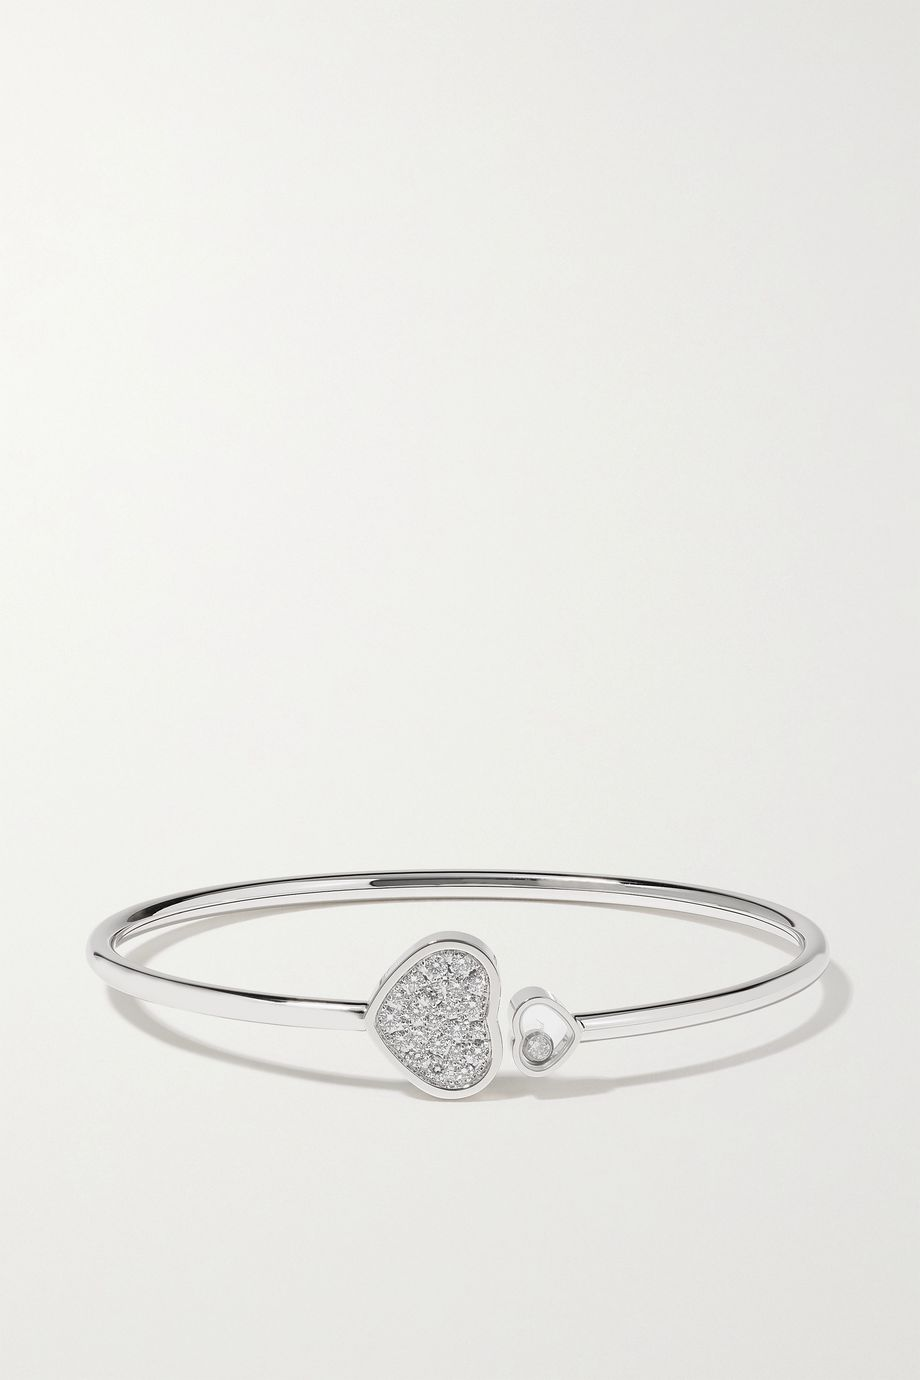 Chopard Bracelet en or blanc 18 carats et diamants Happy Hearts